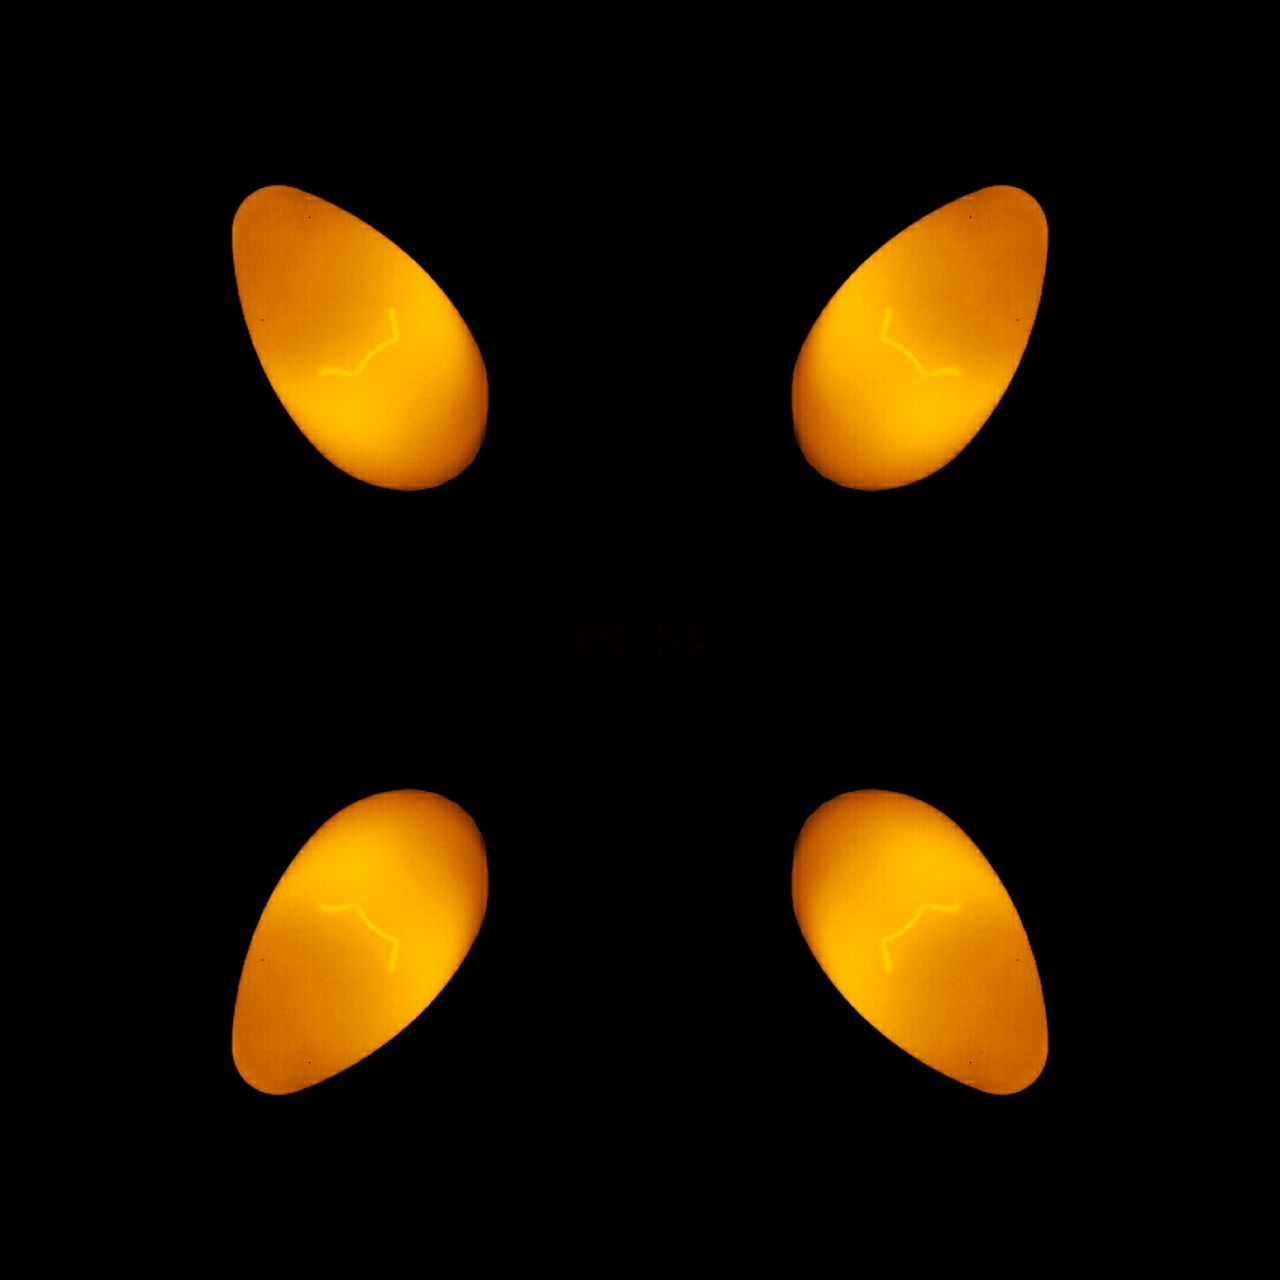 Yellow Glow Yellow Glow Subtle Symmetry Close-up Orange Orange Glow Dark Light Light Bulbs